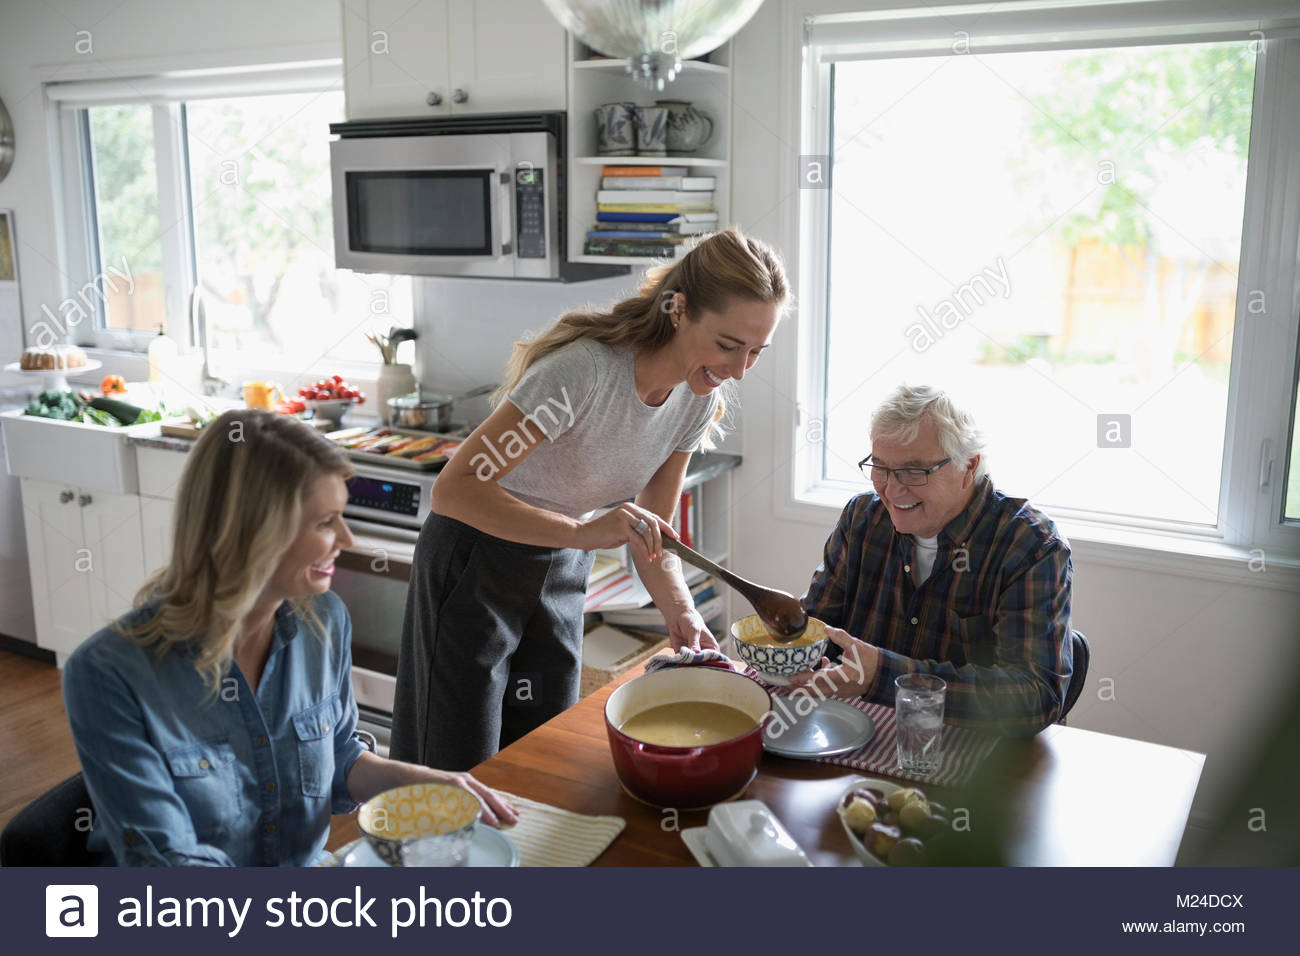 Daughters cooking, serving soup to senior father at kitchen table - Stock Image